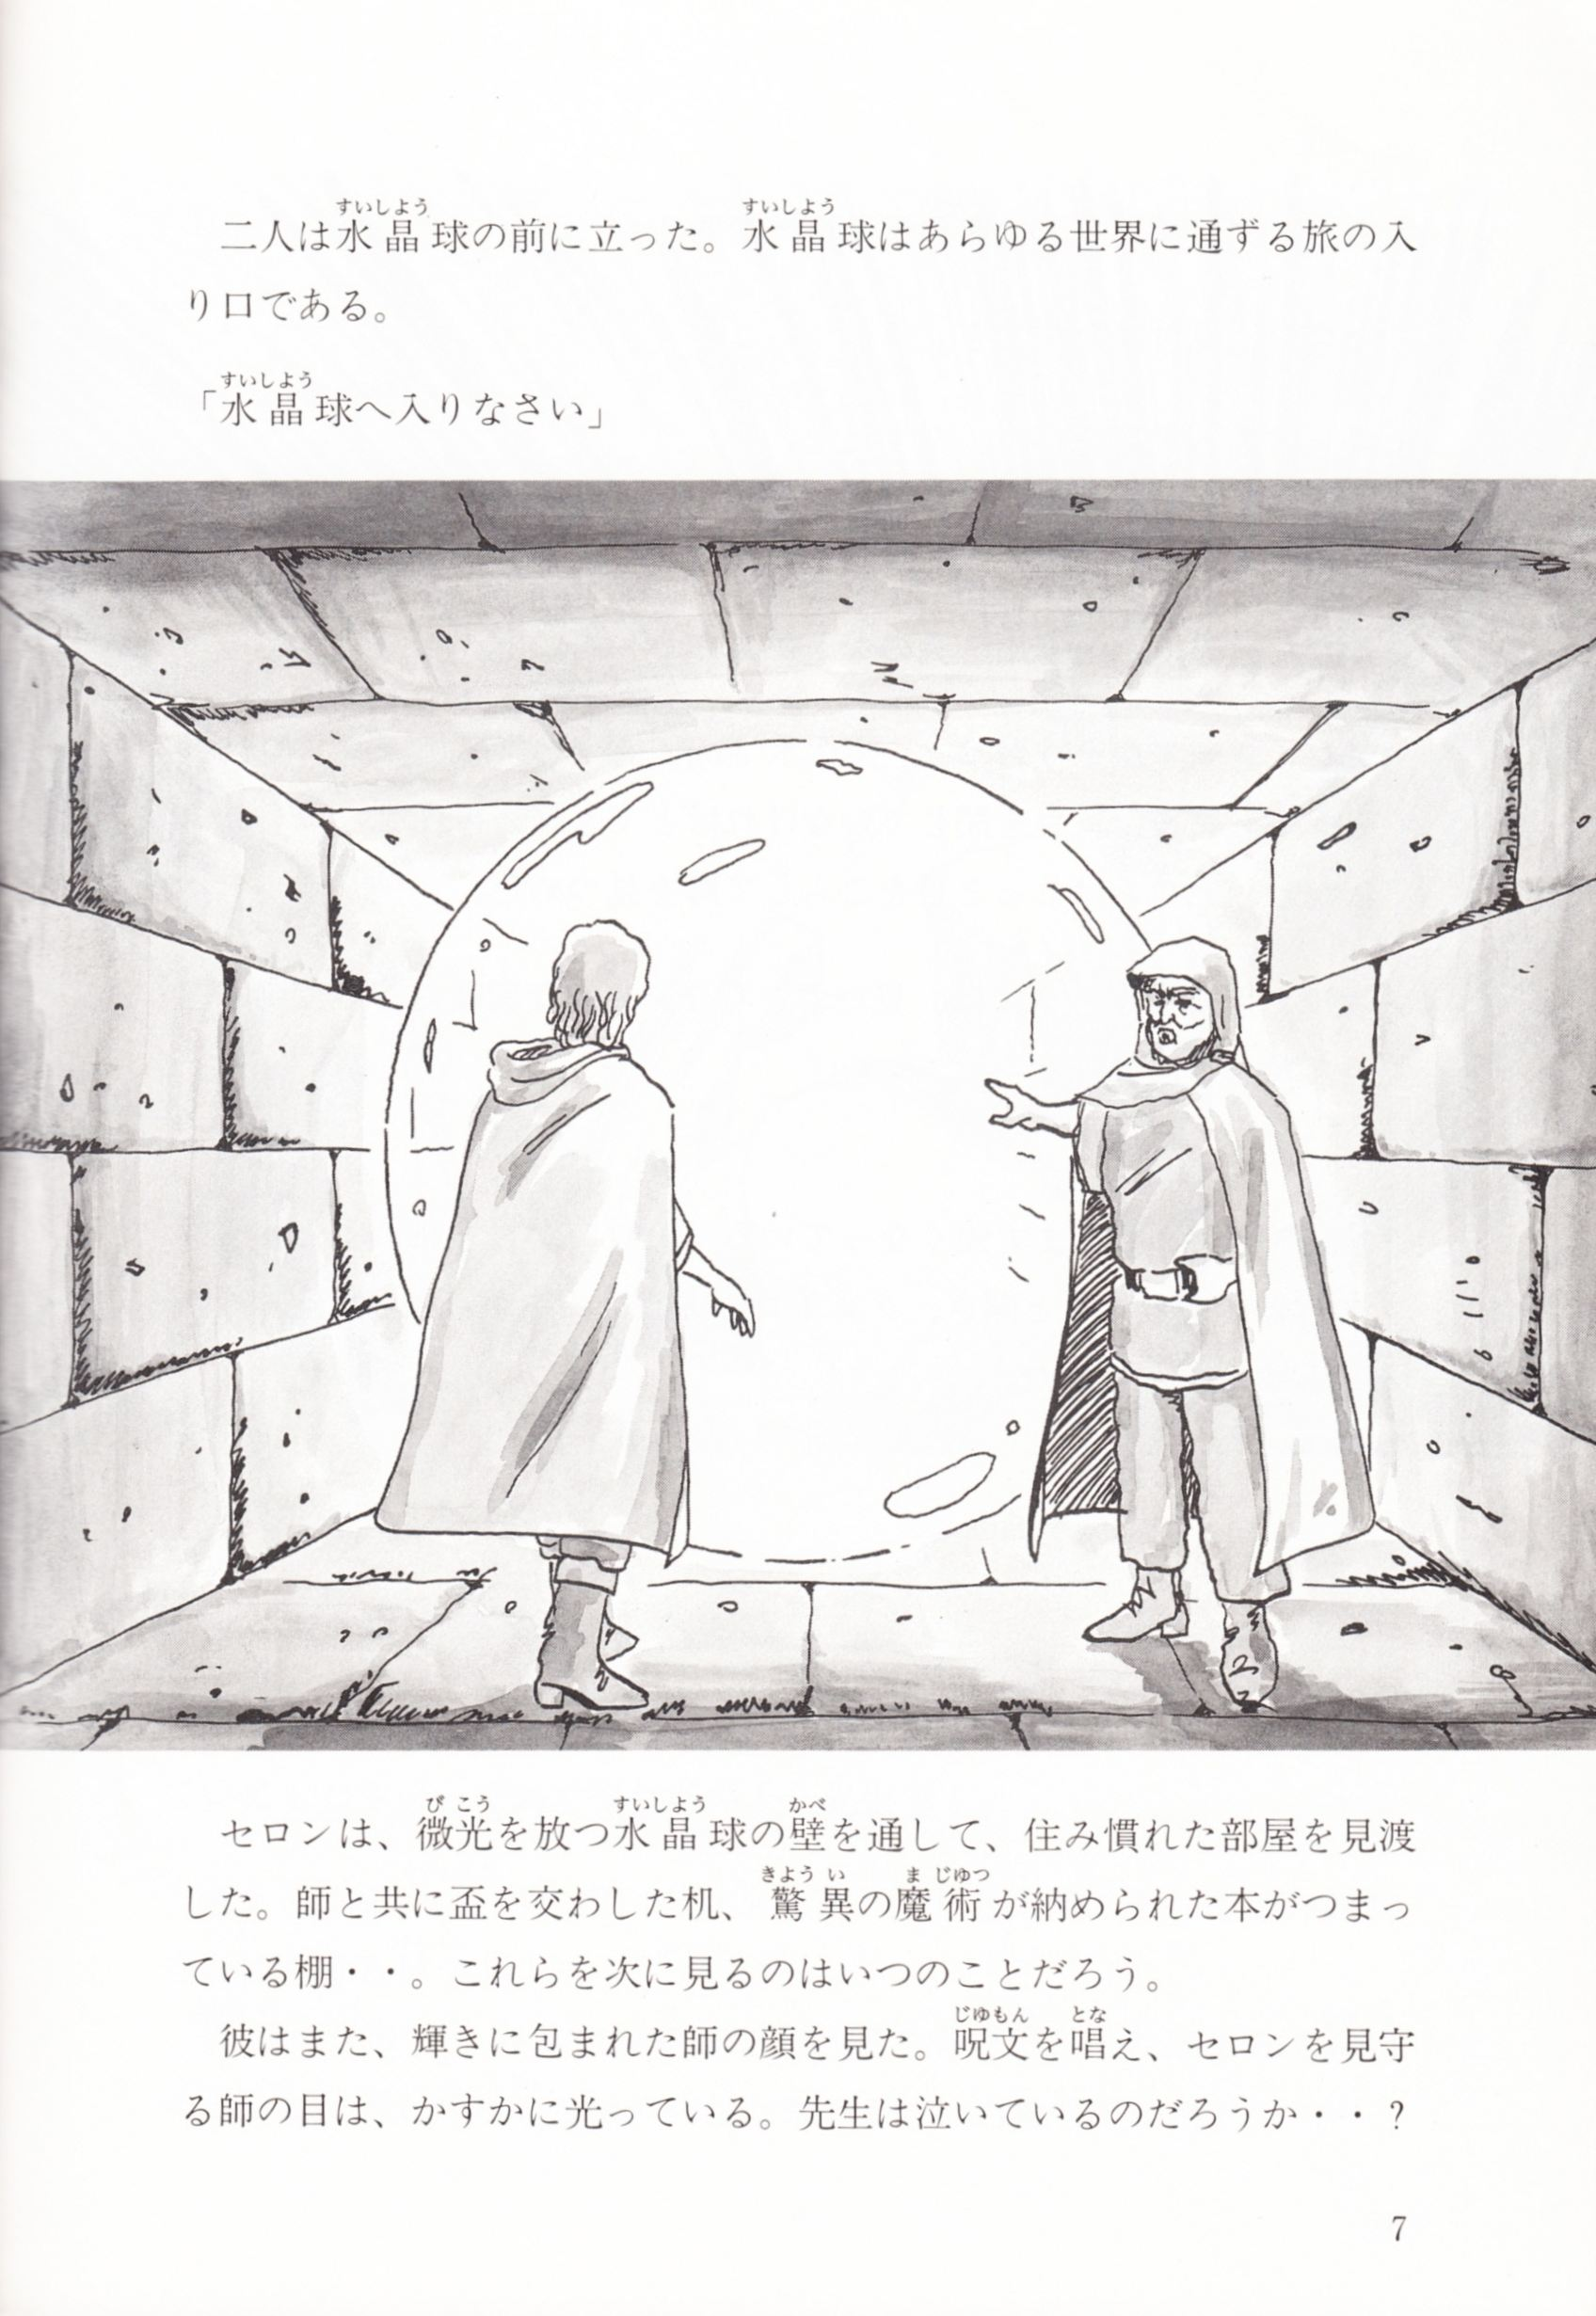 Game - Dungeon Master - JP - FM Towns - Story Guide - Page 009 - Scan